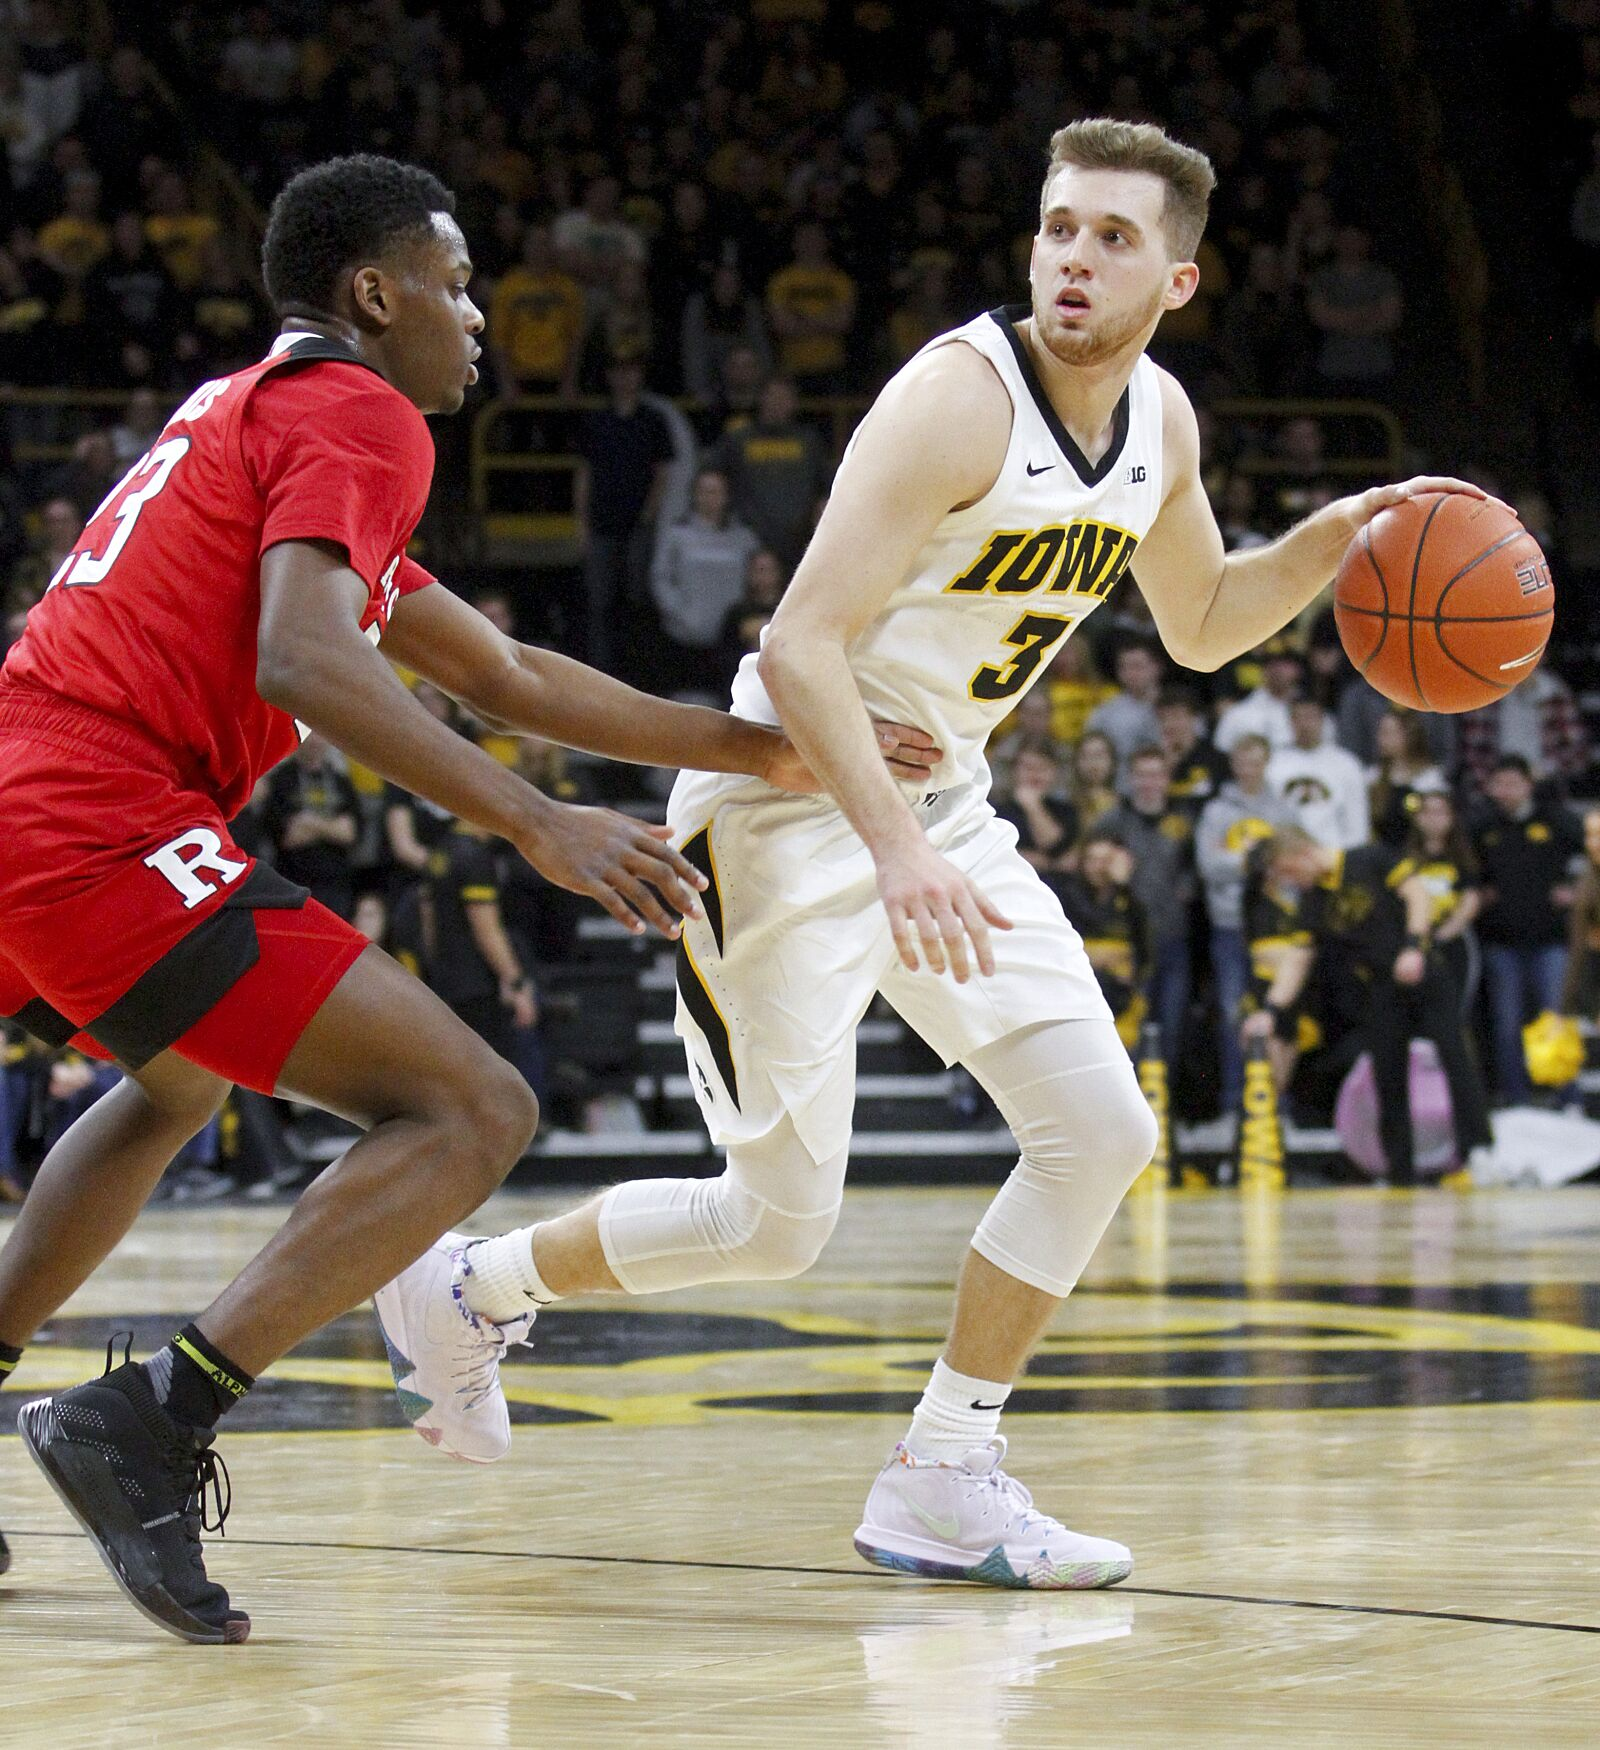 292bd5971 Iowa basketball  Three takeaways in senior night loss to Rutgers